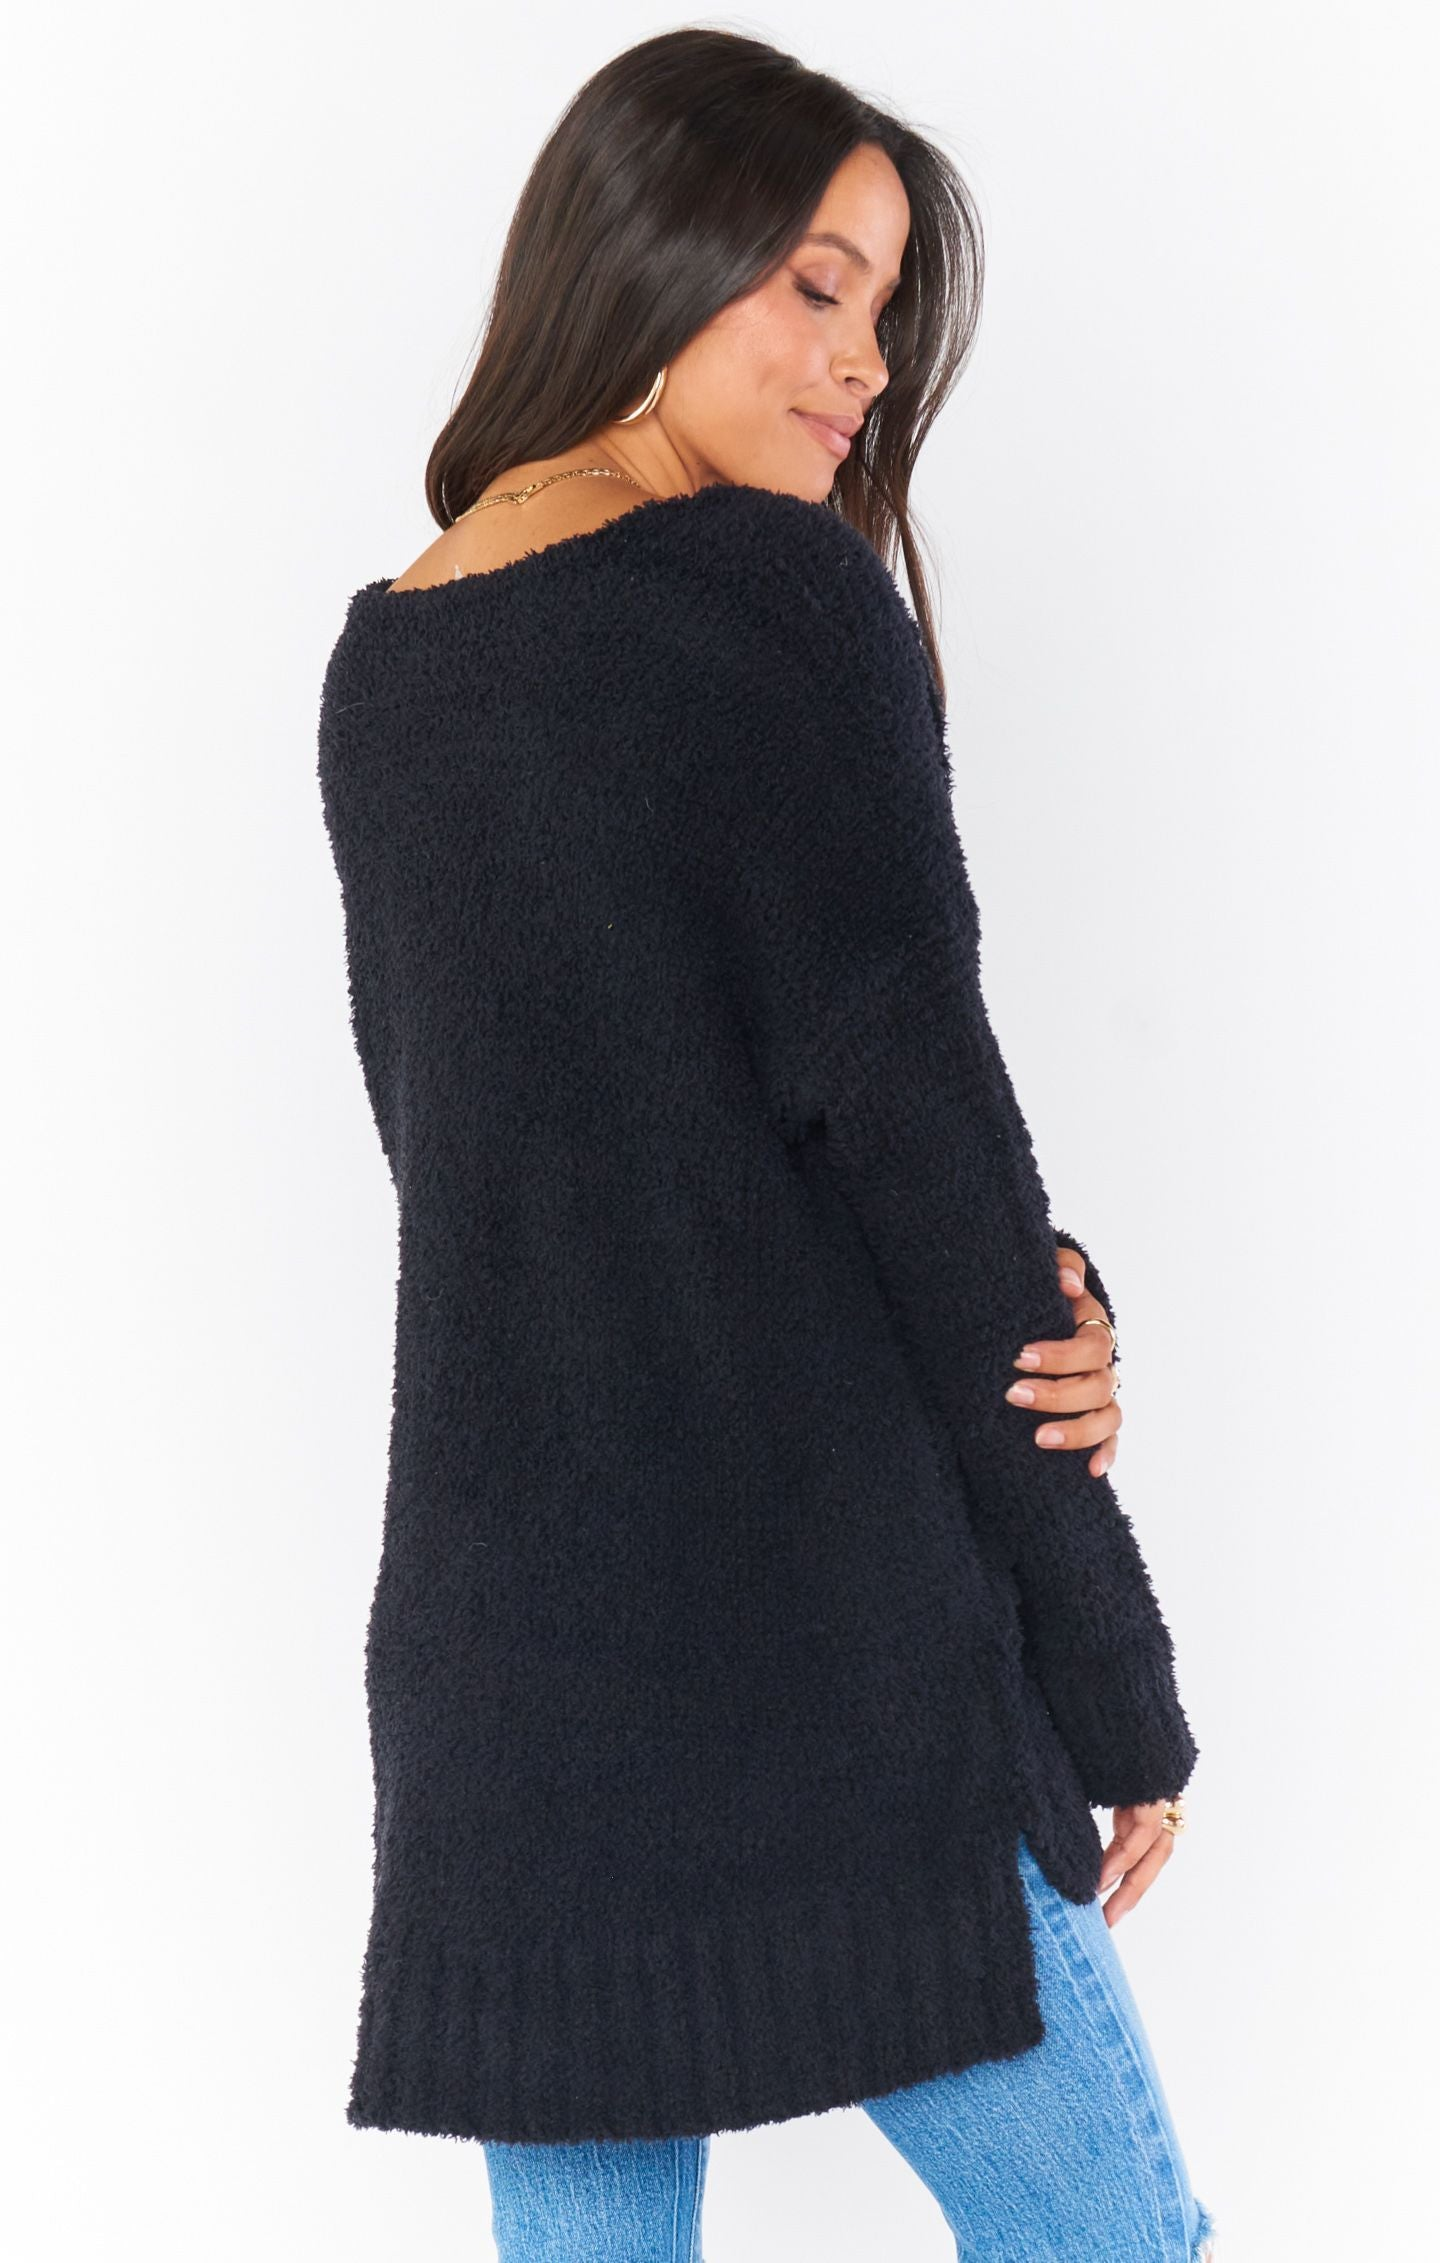 Load image into Gallery viewer, Hug Me Sweater - Black Fuzzy Knit